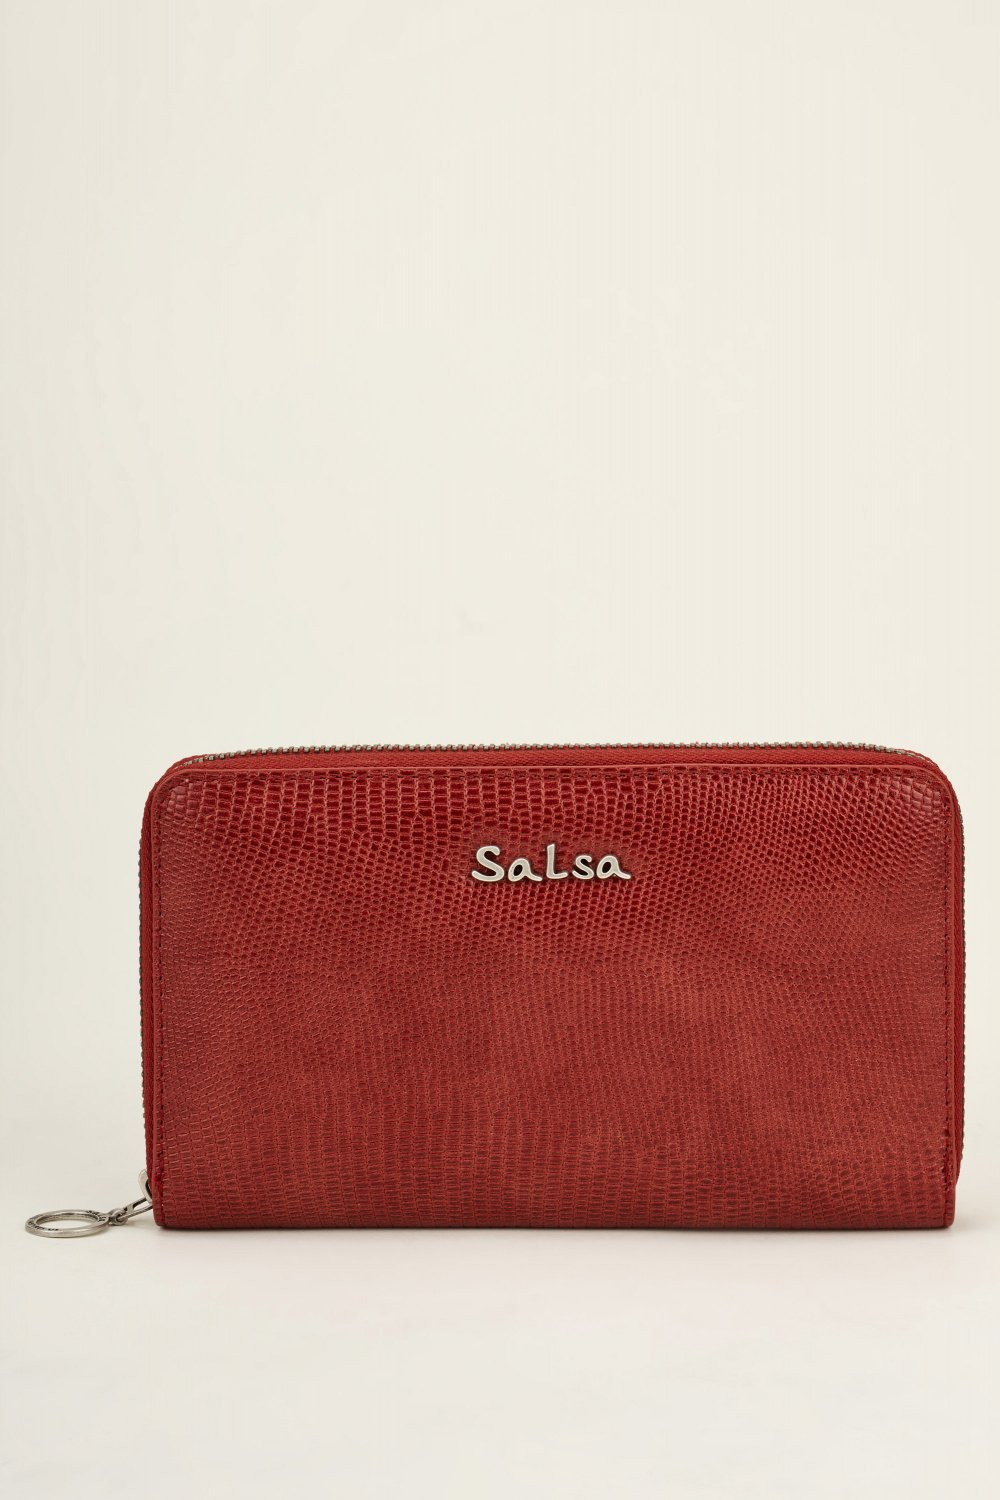 Textured purse - Salsa